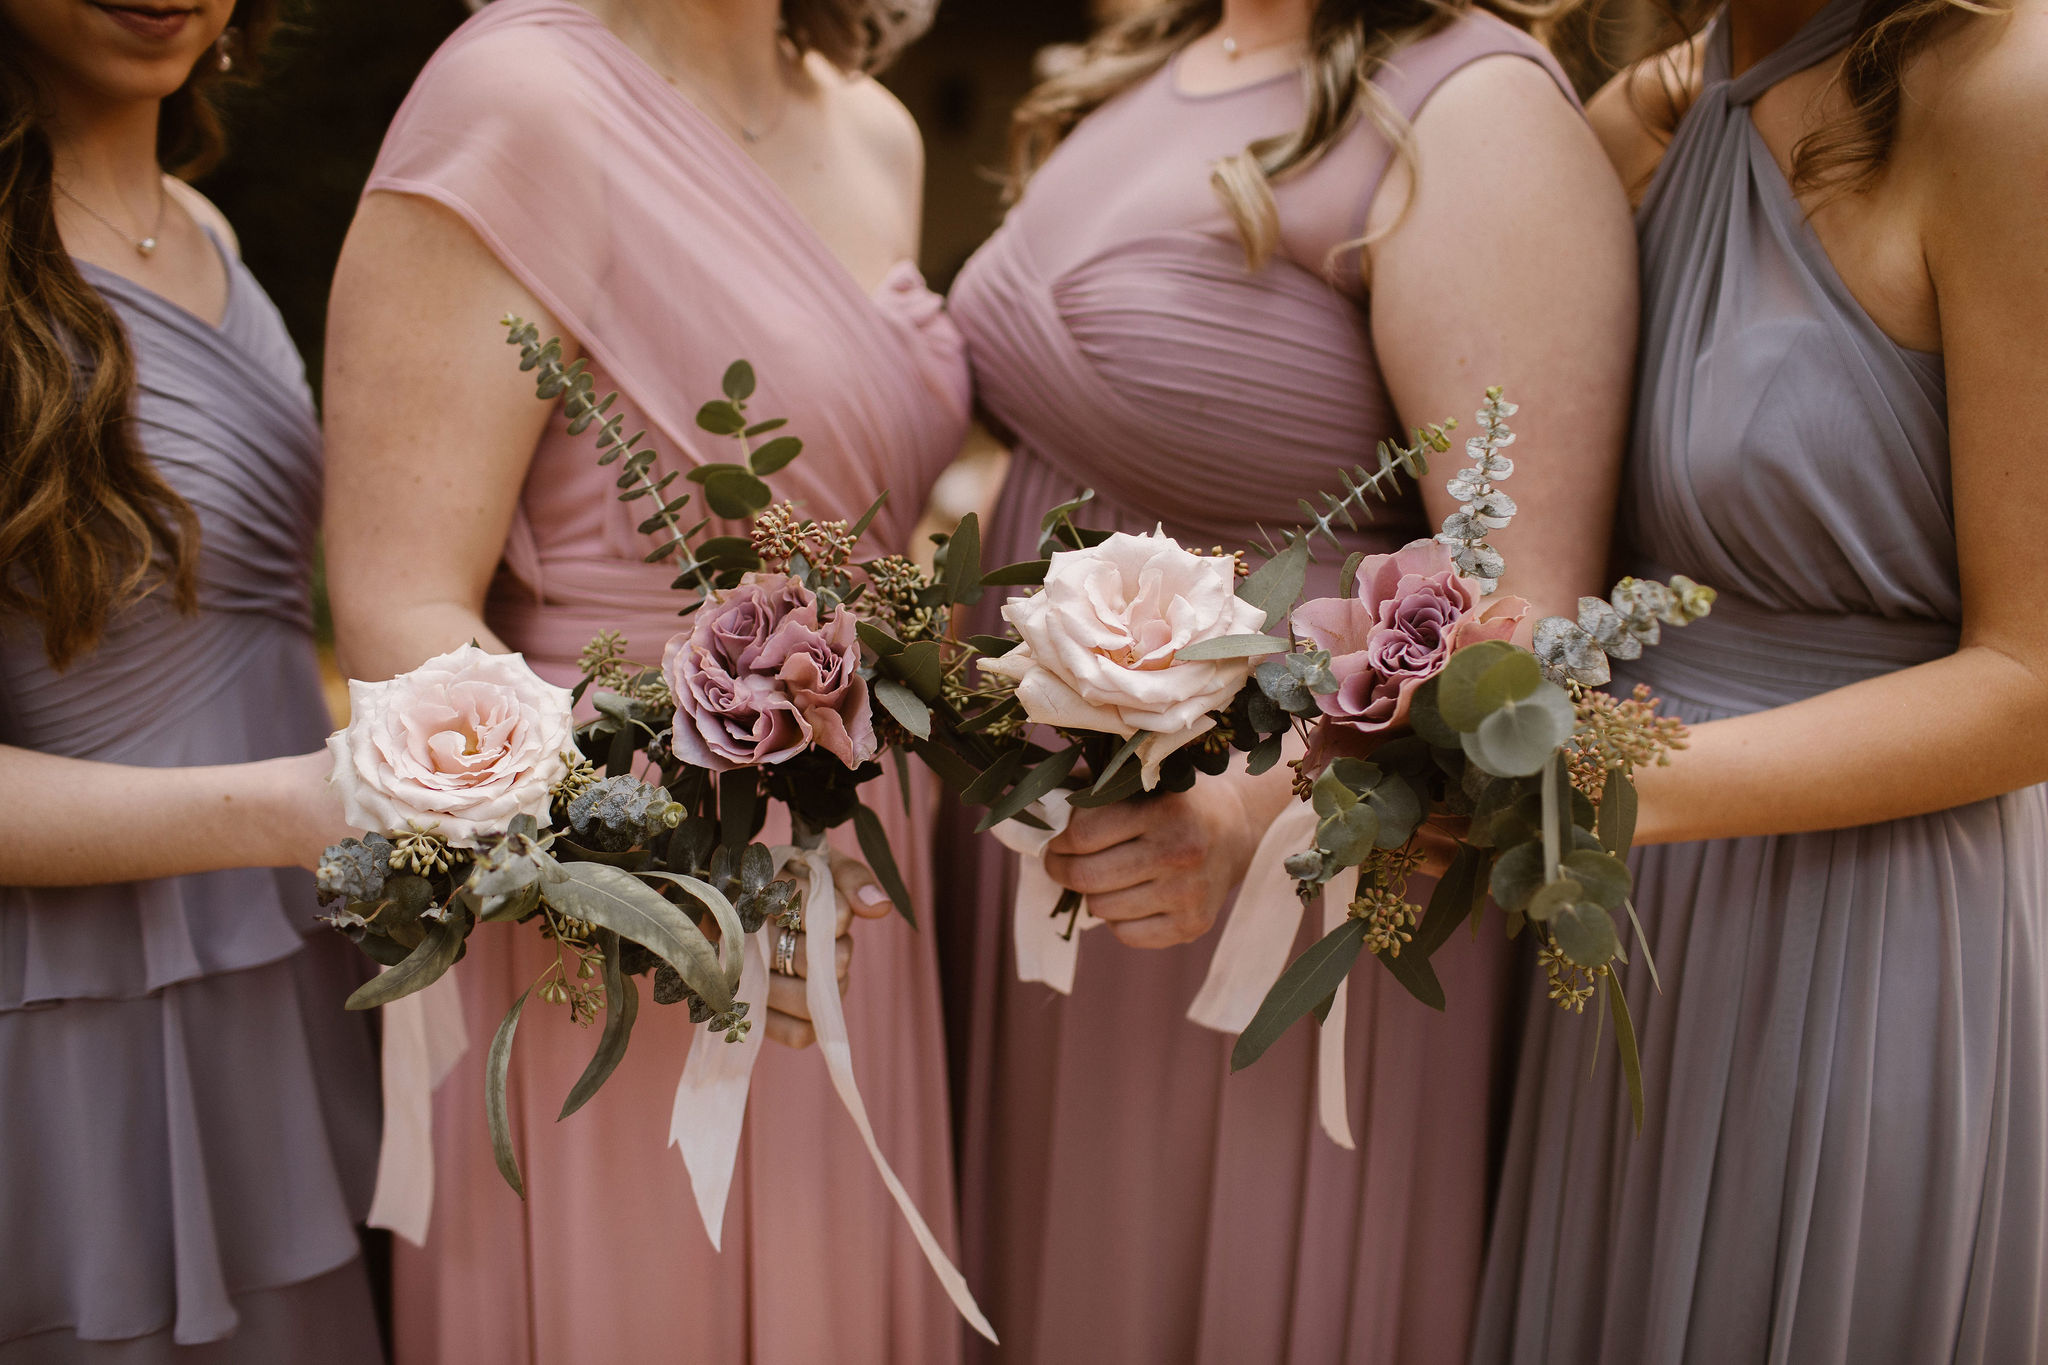 bridesmaids in mauve dresses holding their wedding bouquets